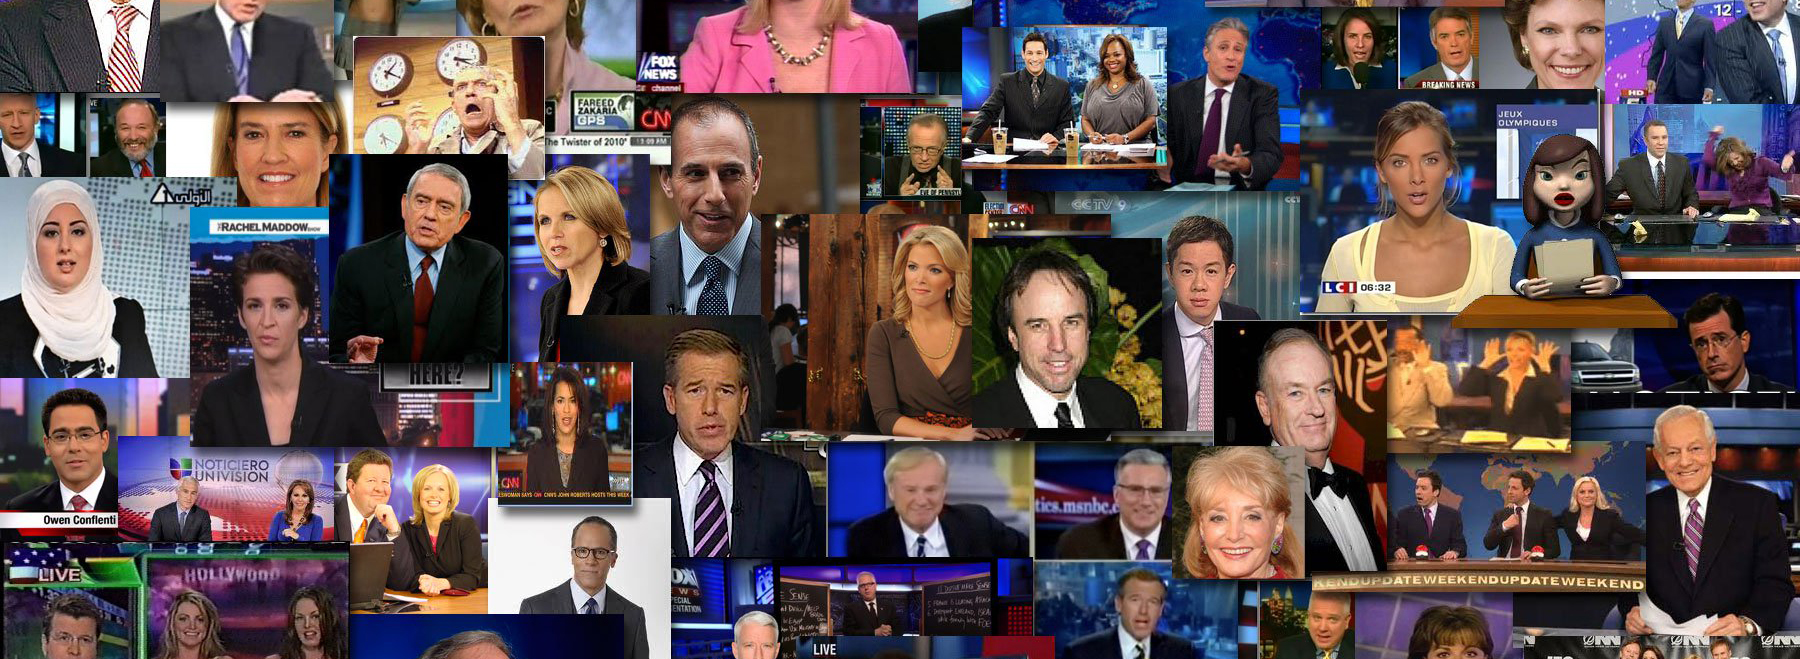 Collage of talking heads from news shows